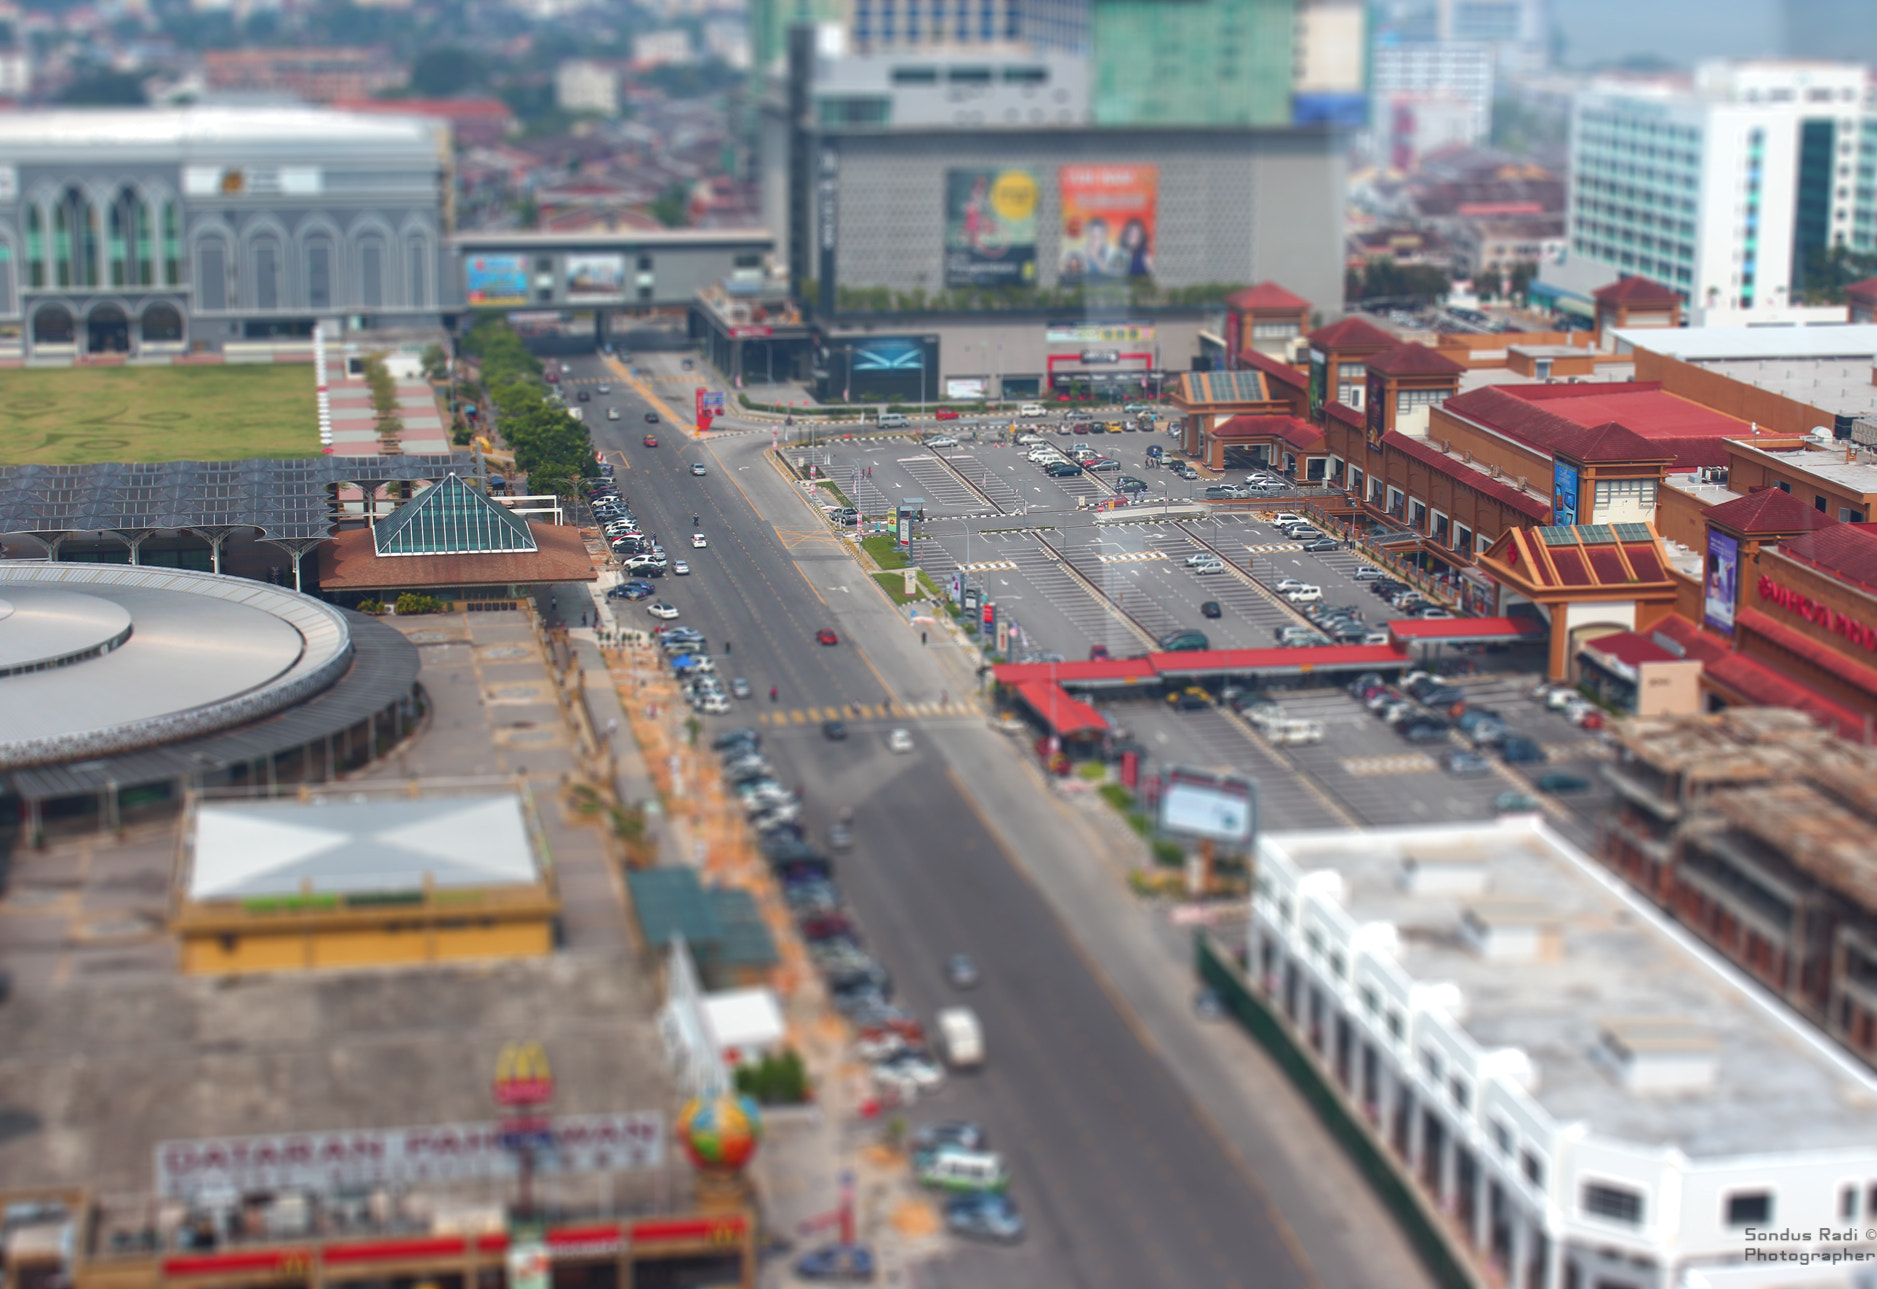 Photograph Tilt Shift effect by Sondus Radi on 500px